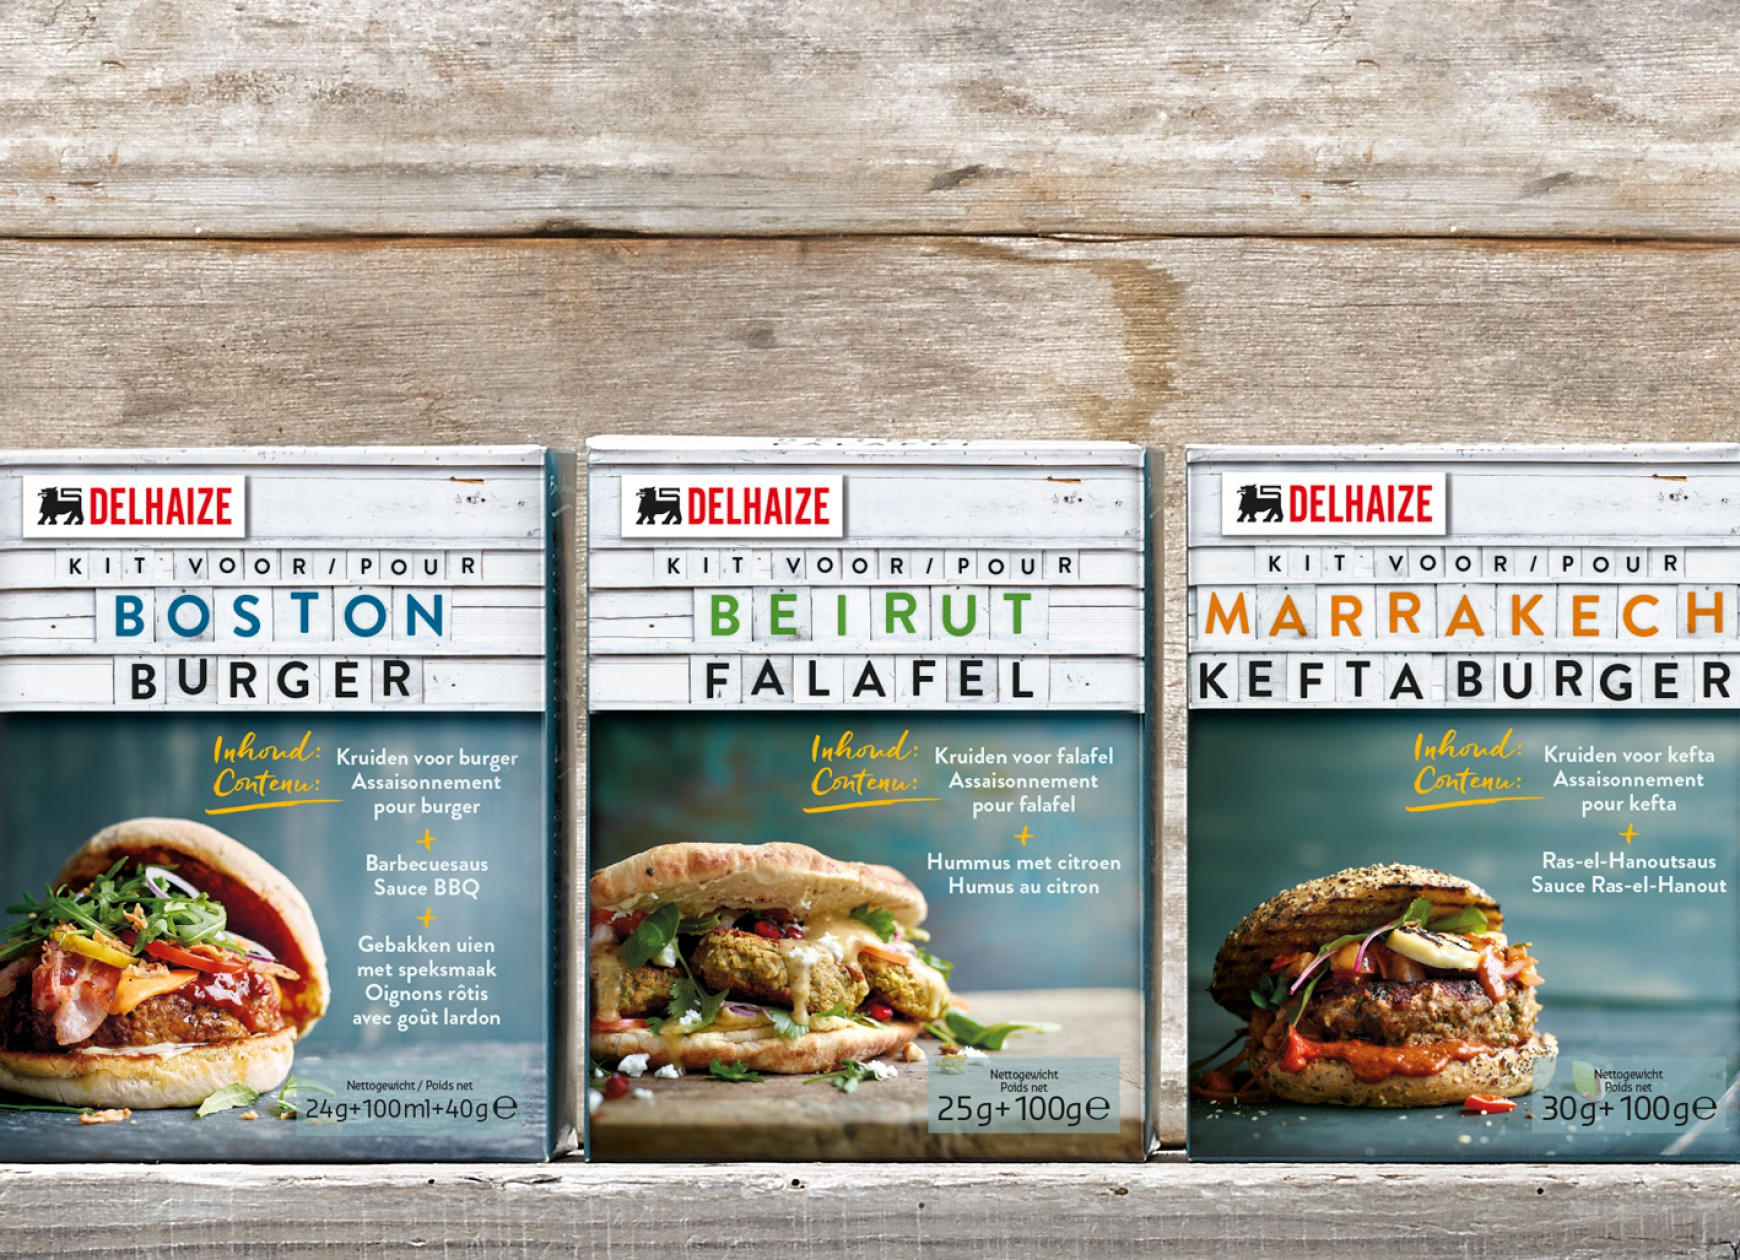 Quatre Mains package design - Package design Delhaize, Boston, burger, boston, beirut, marrakech, kefta, falafel, Quatre Mains, Branding, Packaging